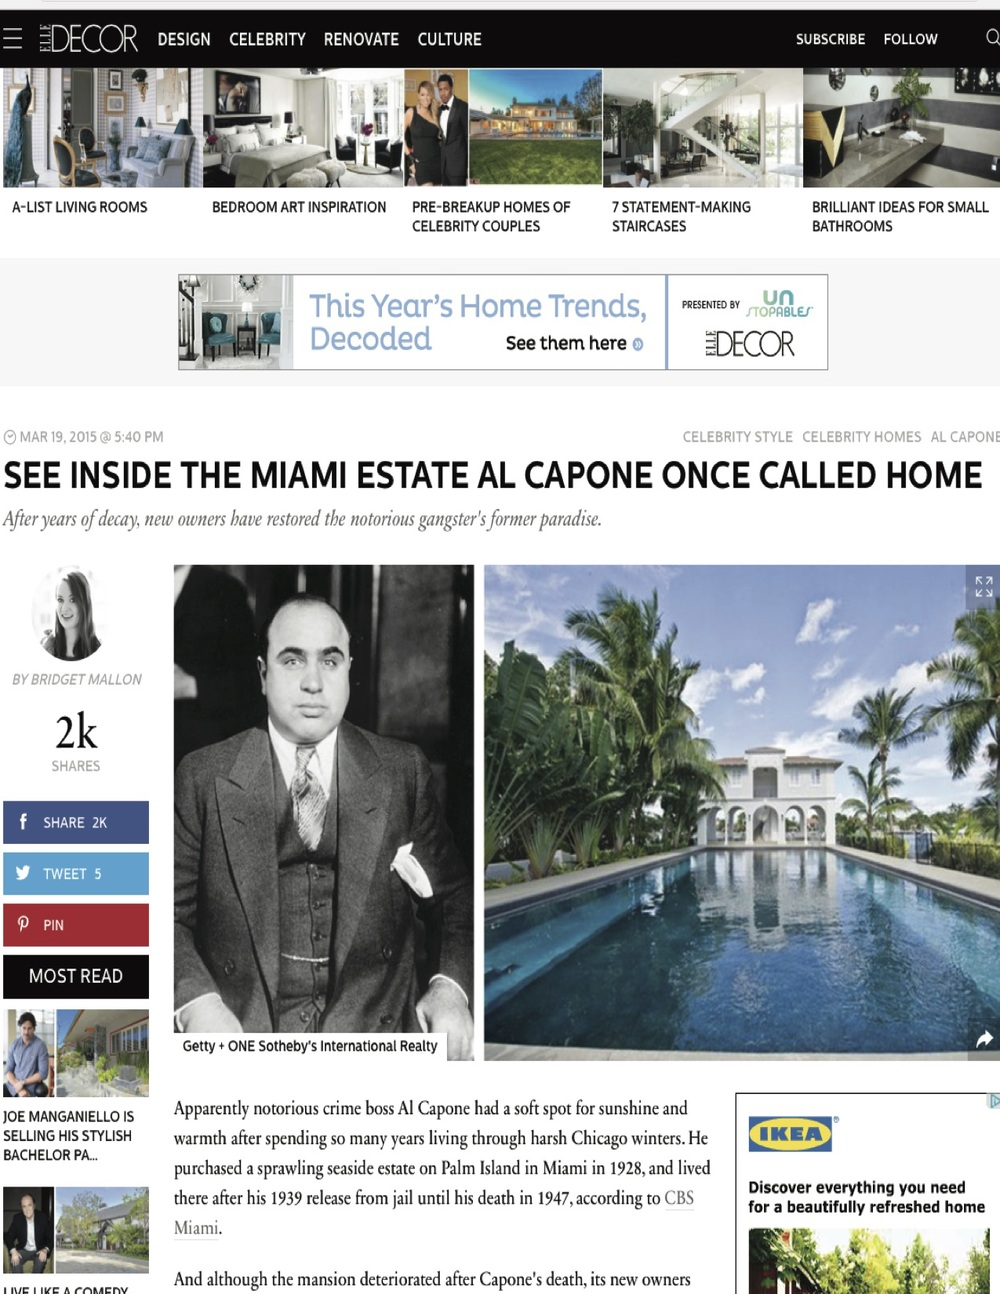 "<p><strong>Elle Decor</strong><a href=""http://www.elledecor.com/celebrity-style/celebrity-homes/a7245/see-inside-al-capones-miami-estate/"" target=""_blank"">View Article →</a></p>"